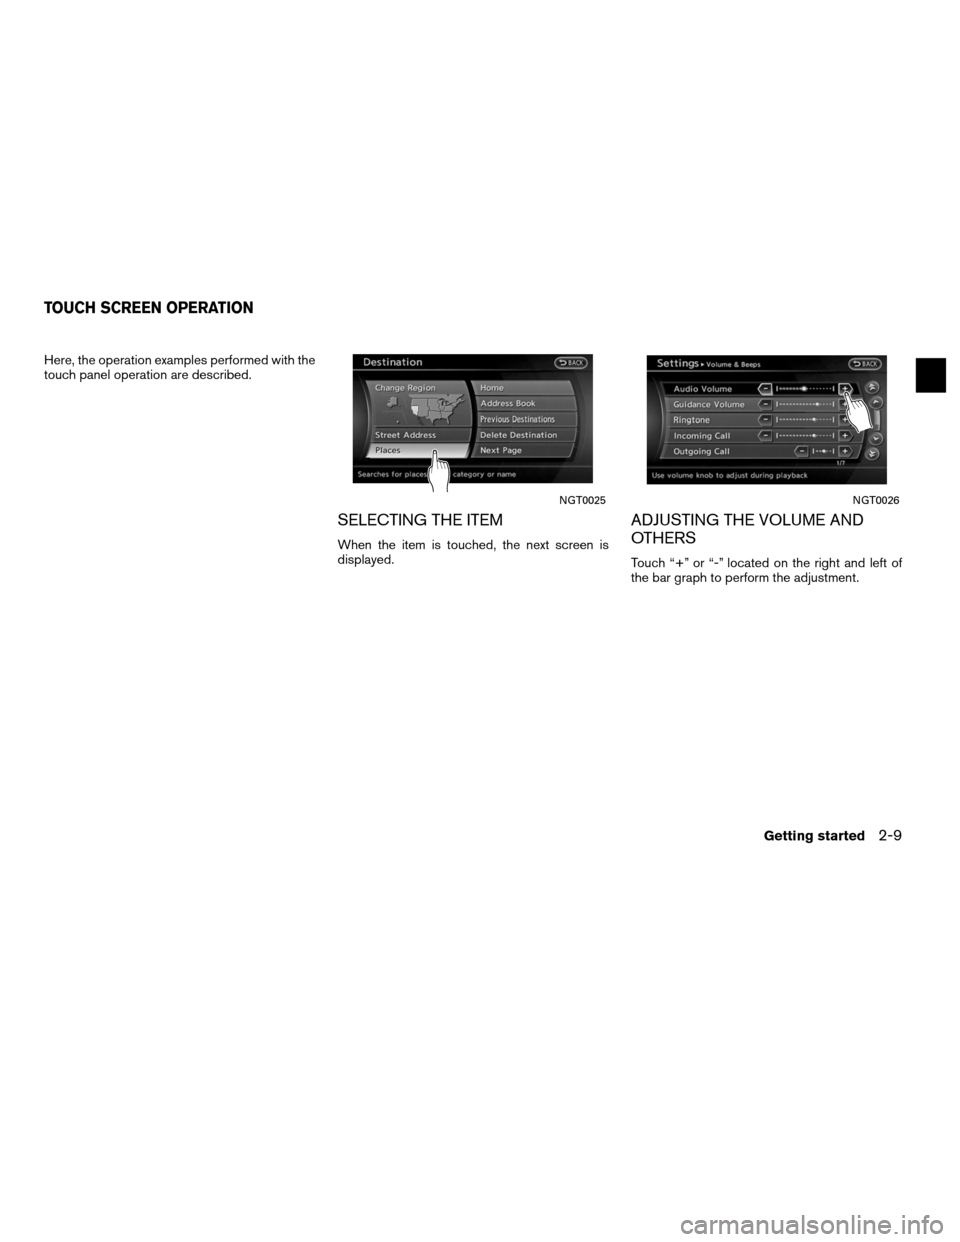 NISSAN ALTIMA COUPE 2011 D32 / 4.G Navigation Manual, Page 17